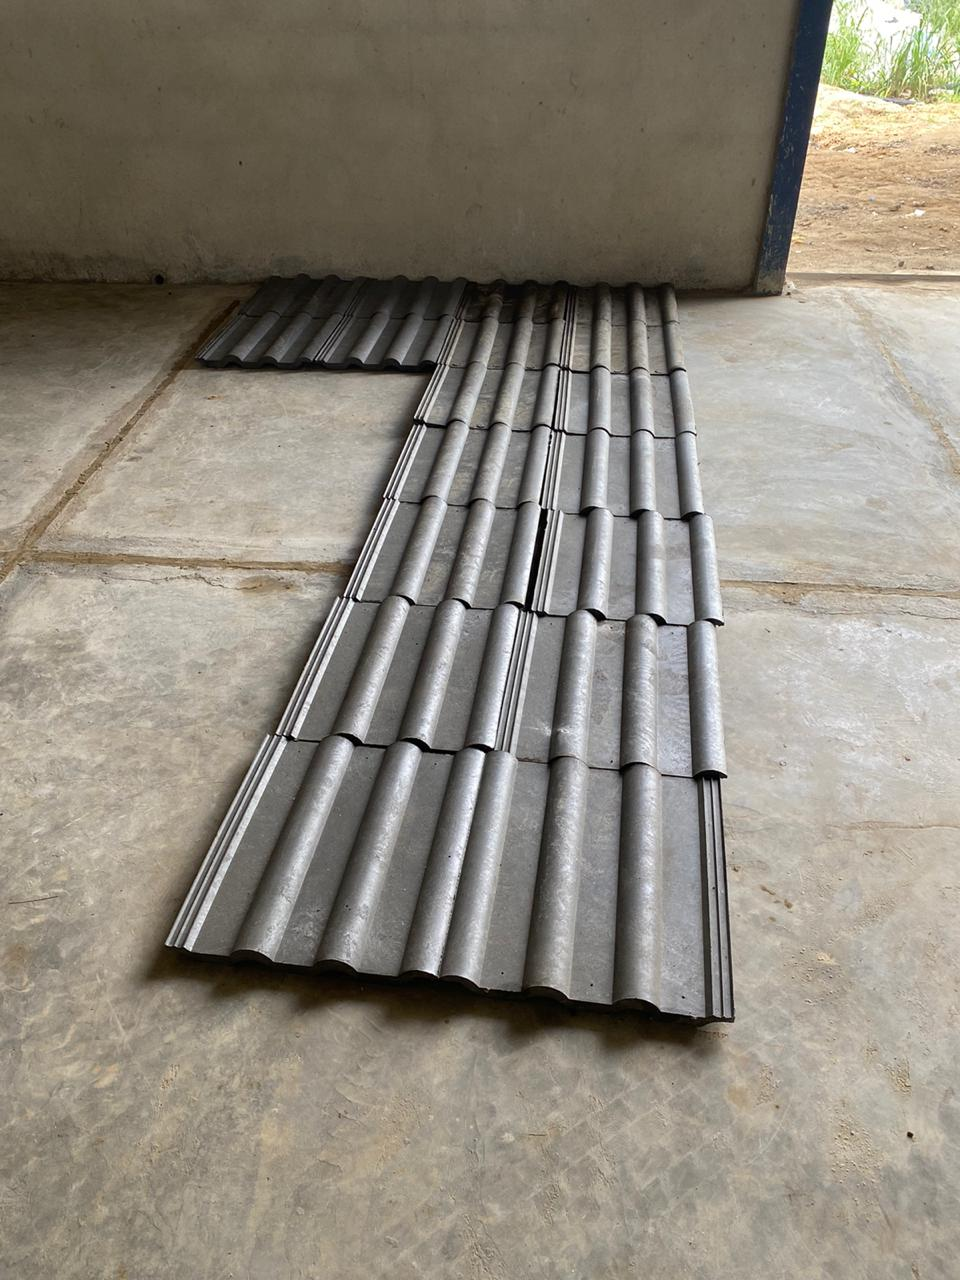 Eco-friendly tereco roofing tiles